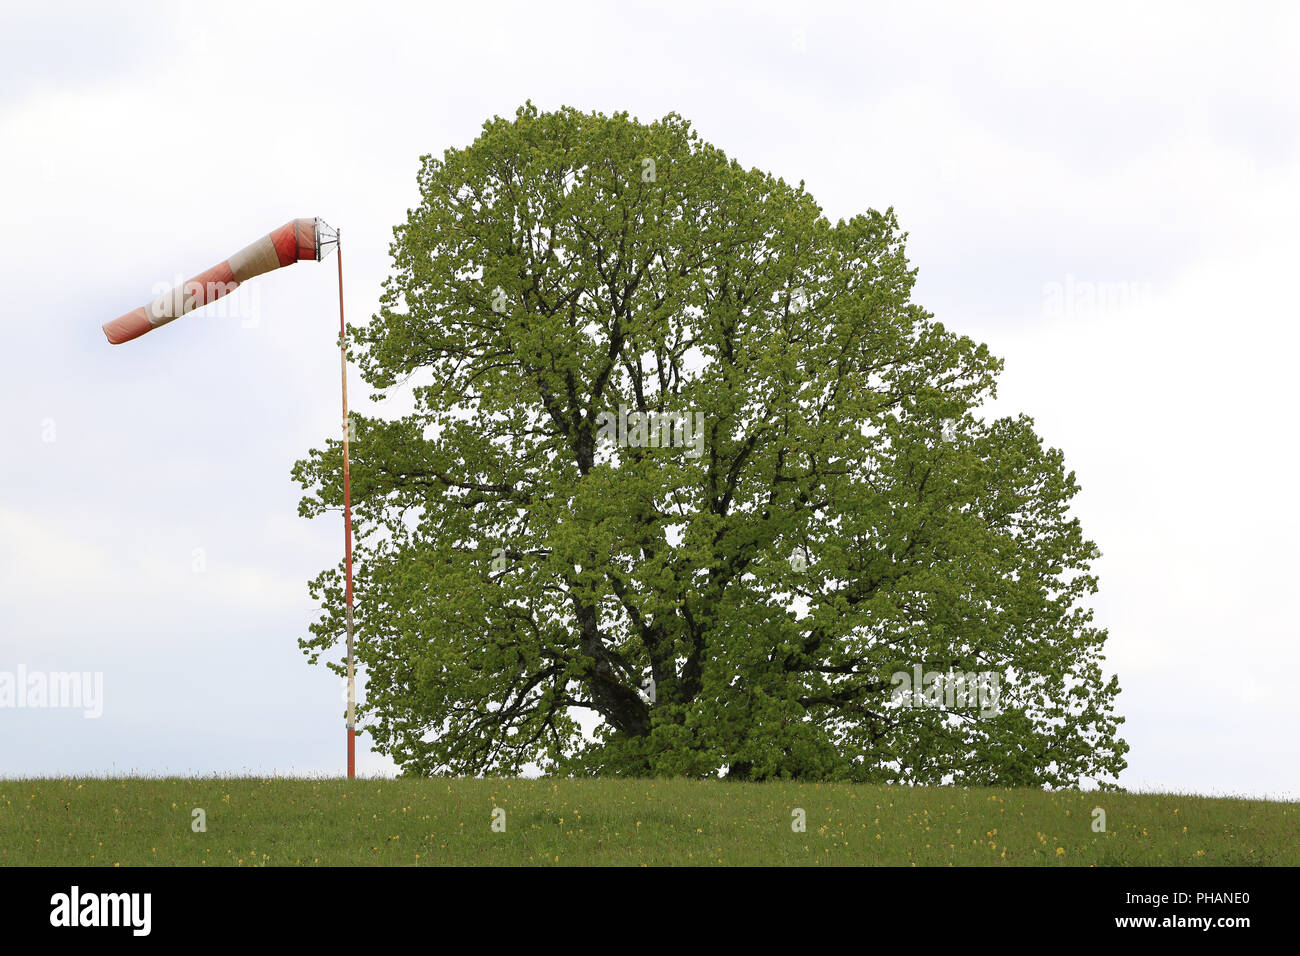 Windsock close to a mighty linden tree - Stock Image